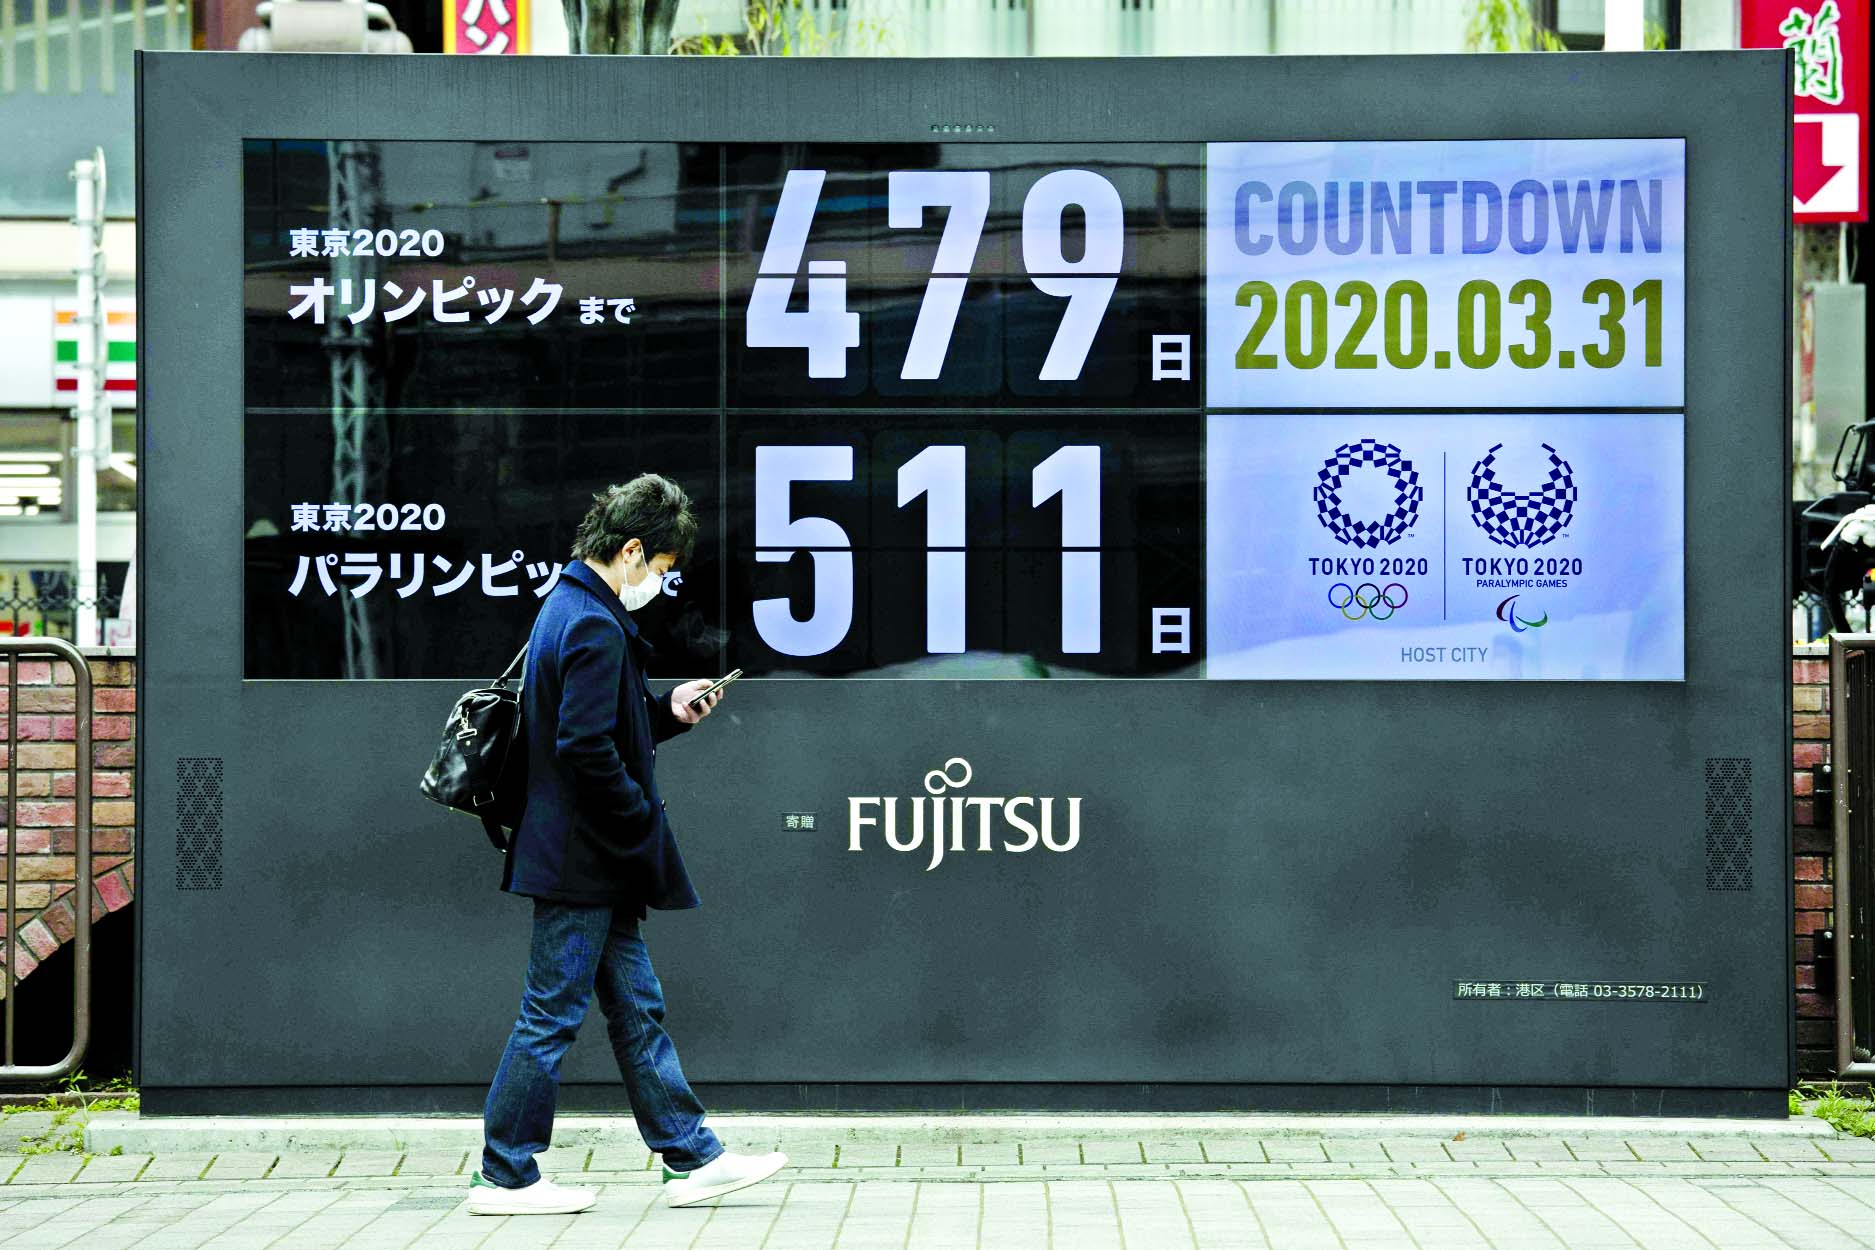 A man walks past a countdown display for the Tokyo 2020 Olympics and Paralympics in Tokyo on Tuesday. The countdown clock is ticking again for the Tokyo Olympics. They will be July 23 to Aug. 8, 2021. The clock read 479 days to go. This seems light years away, but also small and insignificant compared to the worldwide fallout from the coronavirus.